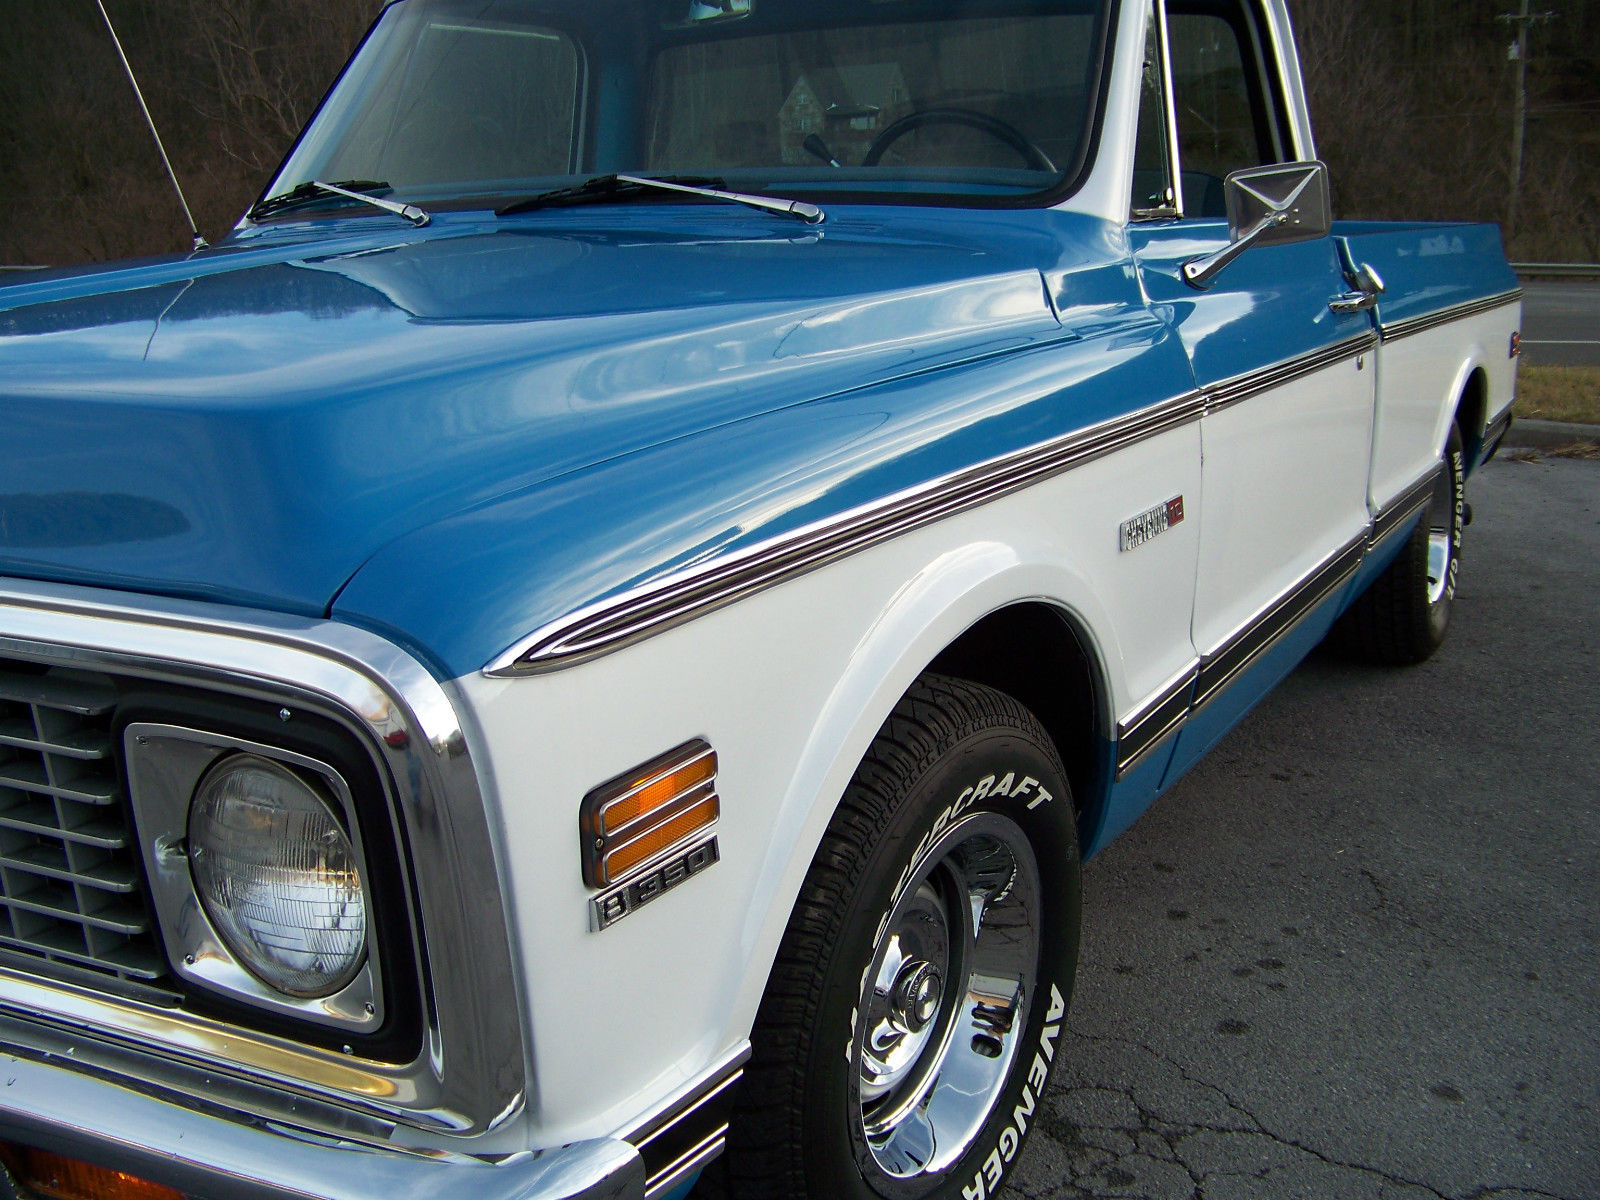 72 CHEVROLET C10 SHORT BED 350 AUTOMATIC VERY NICE!